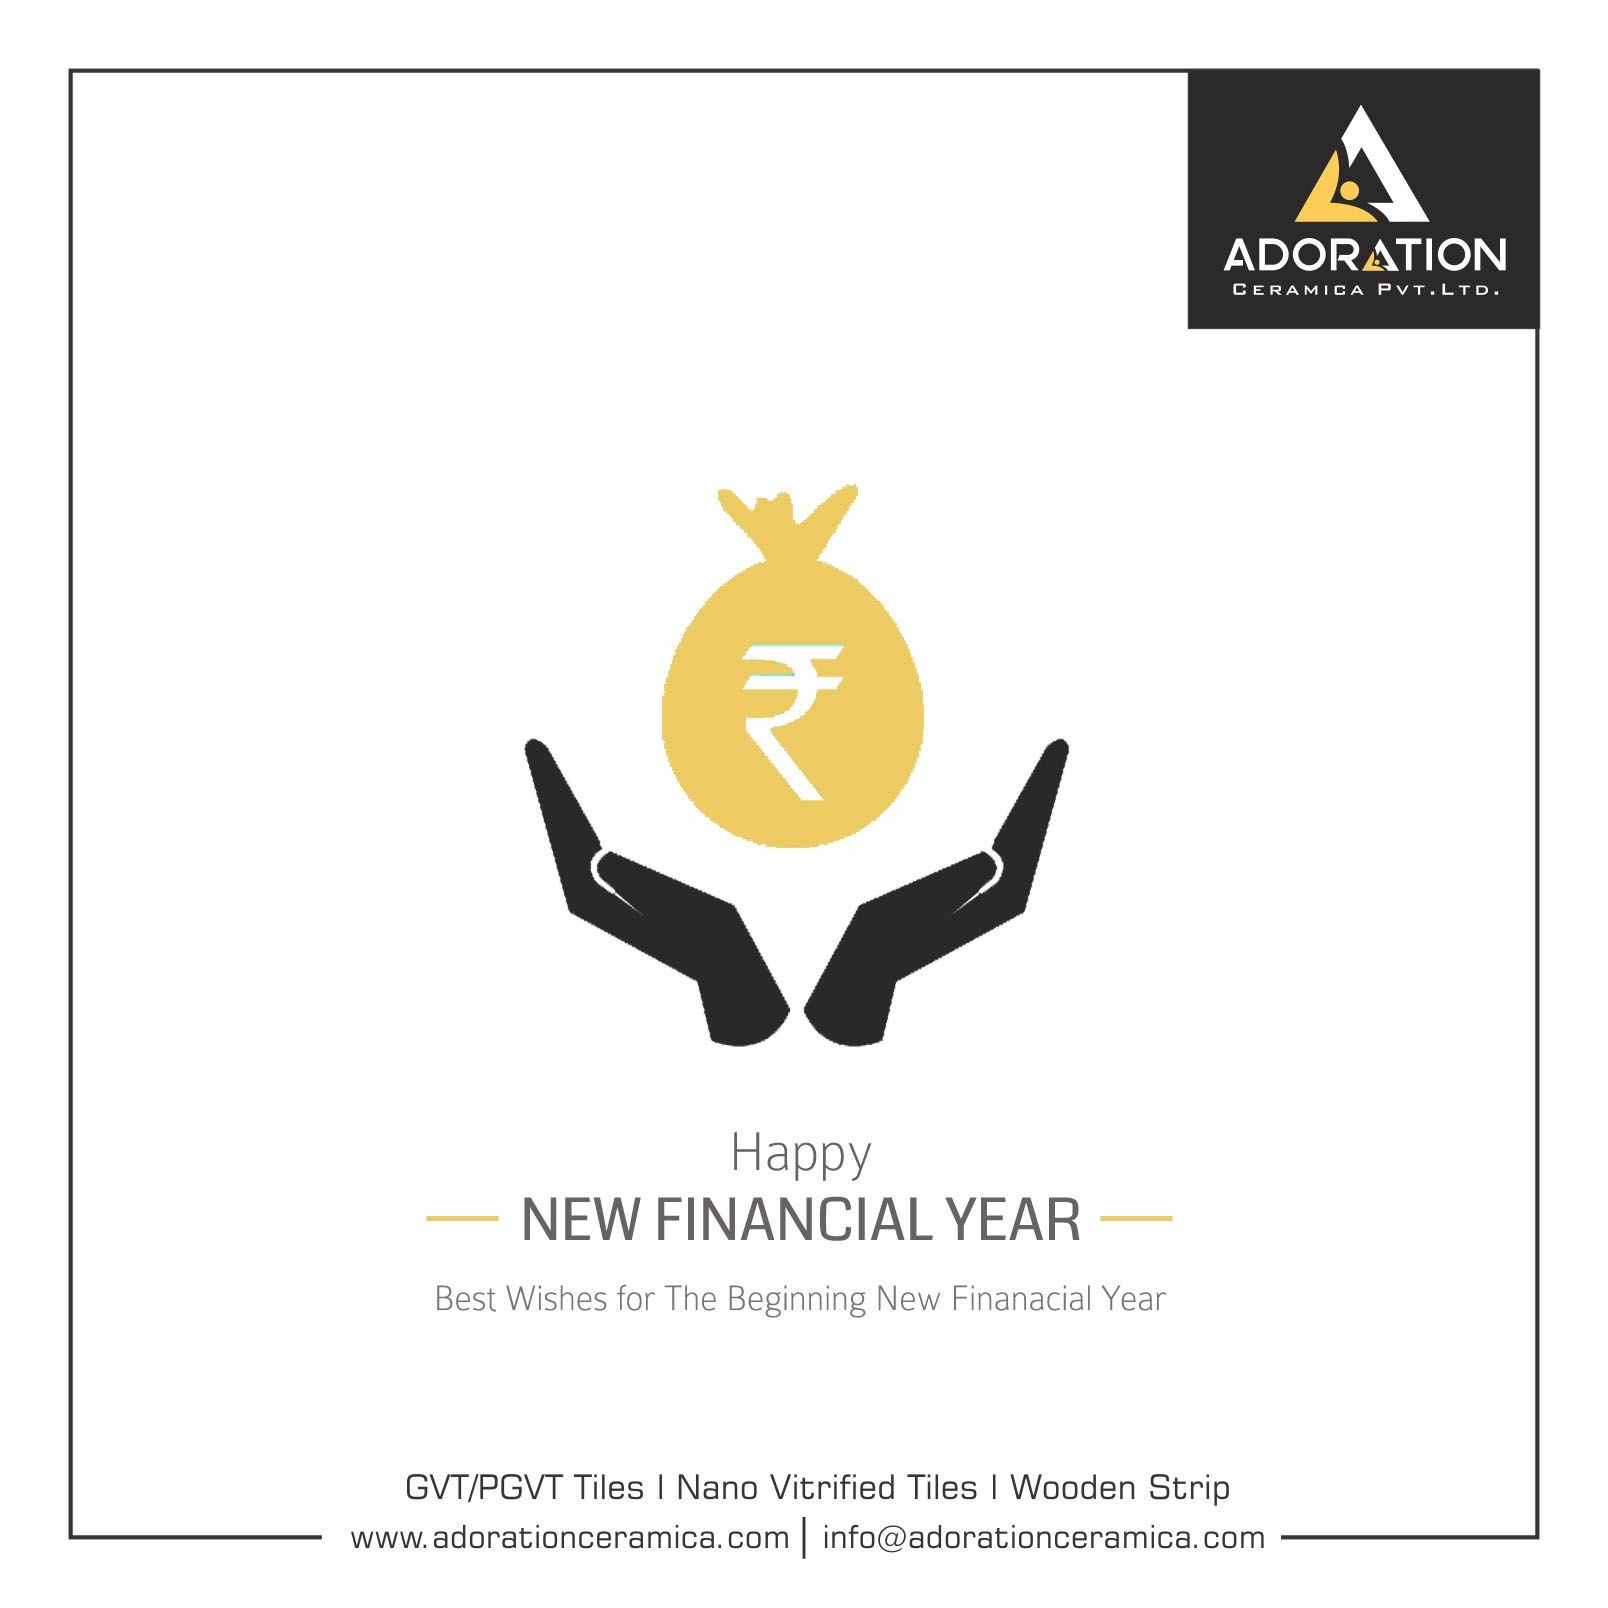 Best wishes for the beginning New Financial Year! Wishing